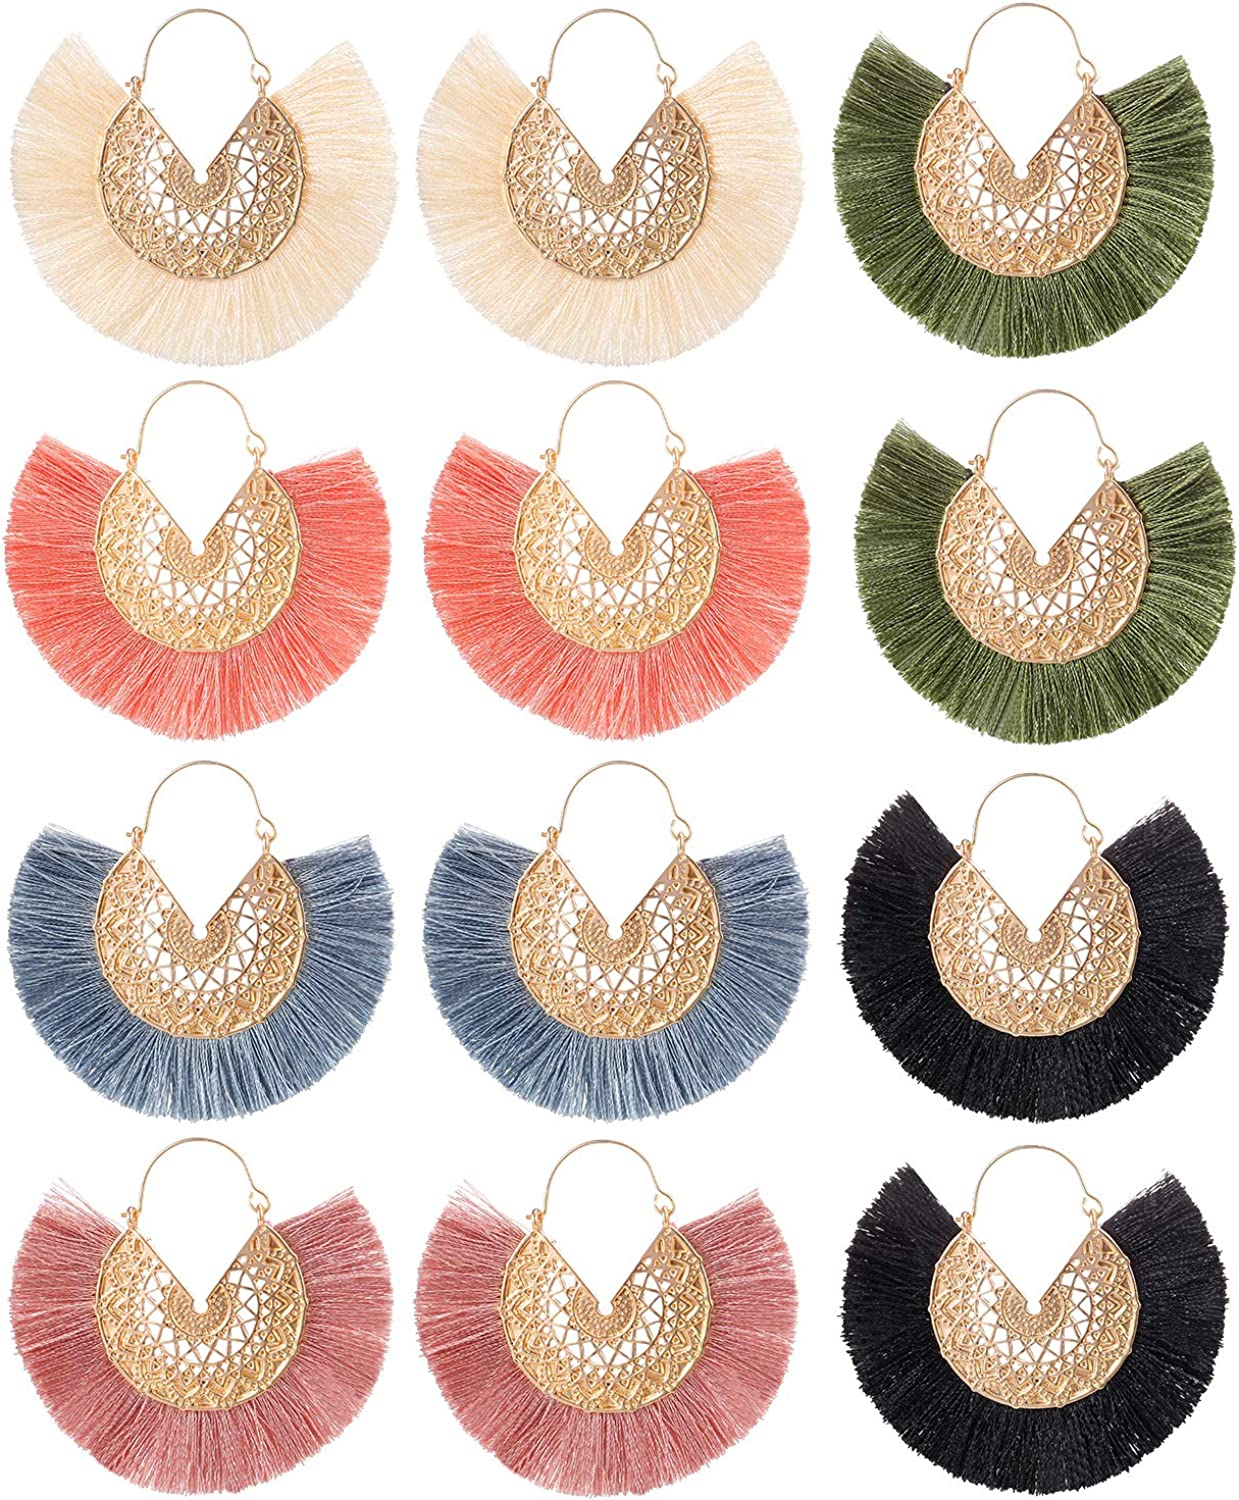 SYNLIN 6 Pairs Boho Fringe Earrings Set for Women and Girls - Statement Earrings with Unique Design Bright Colors